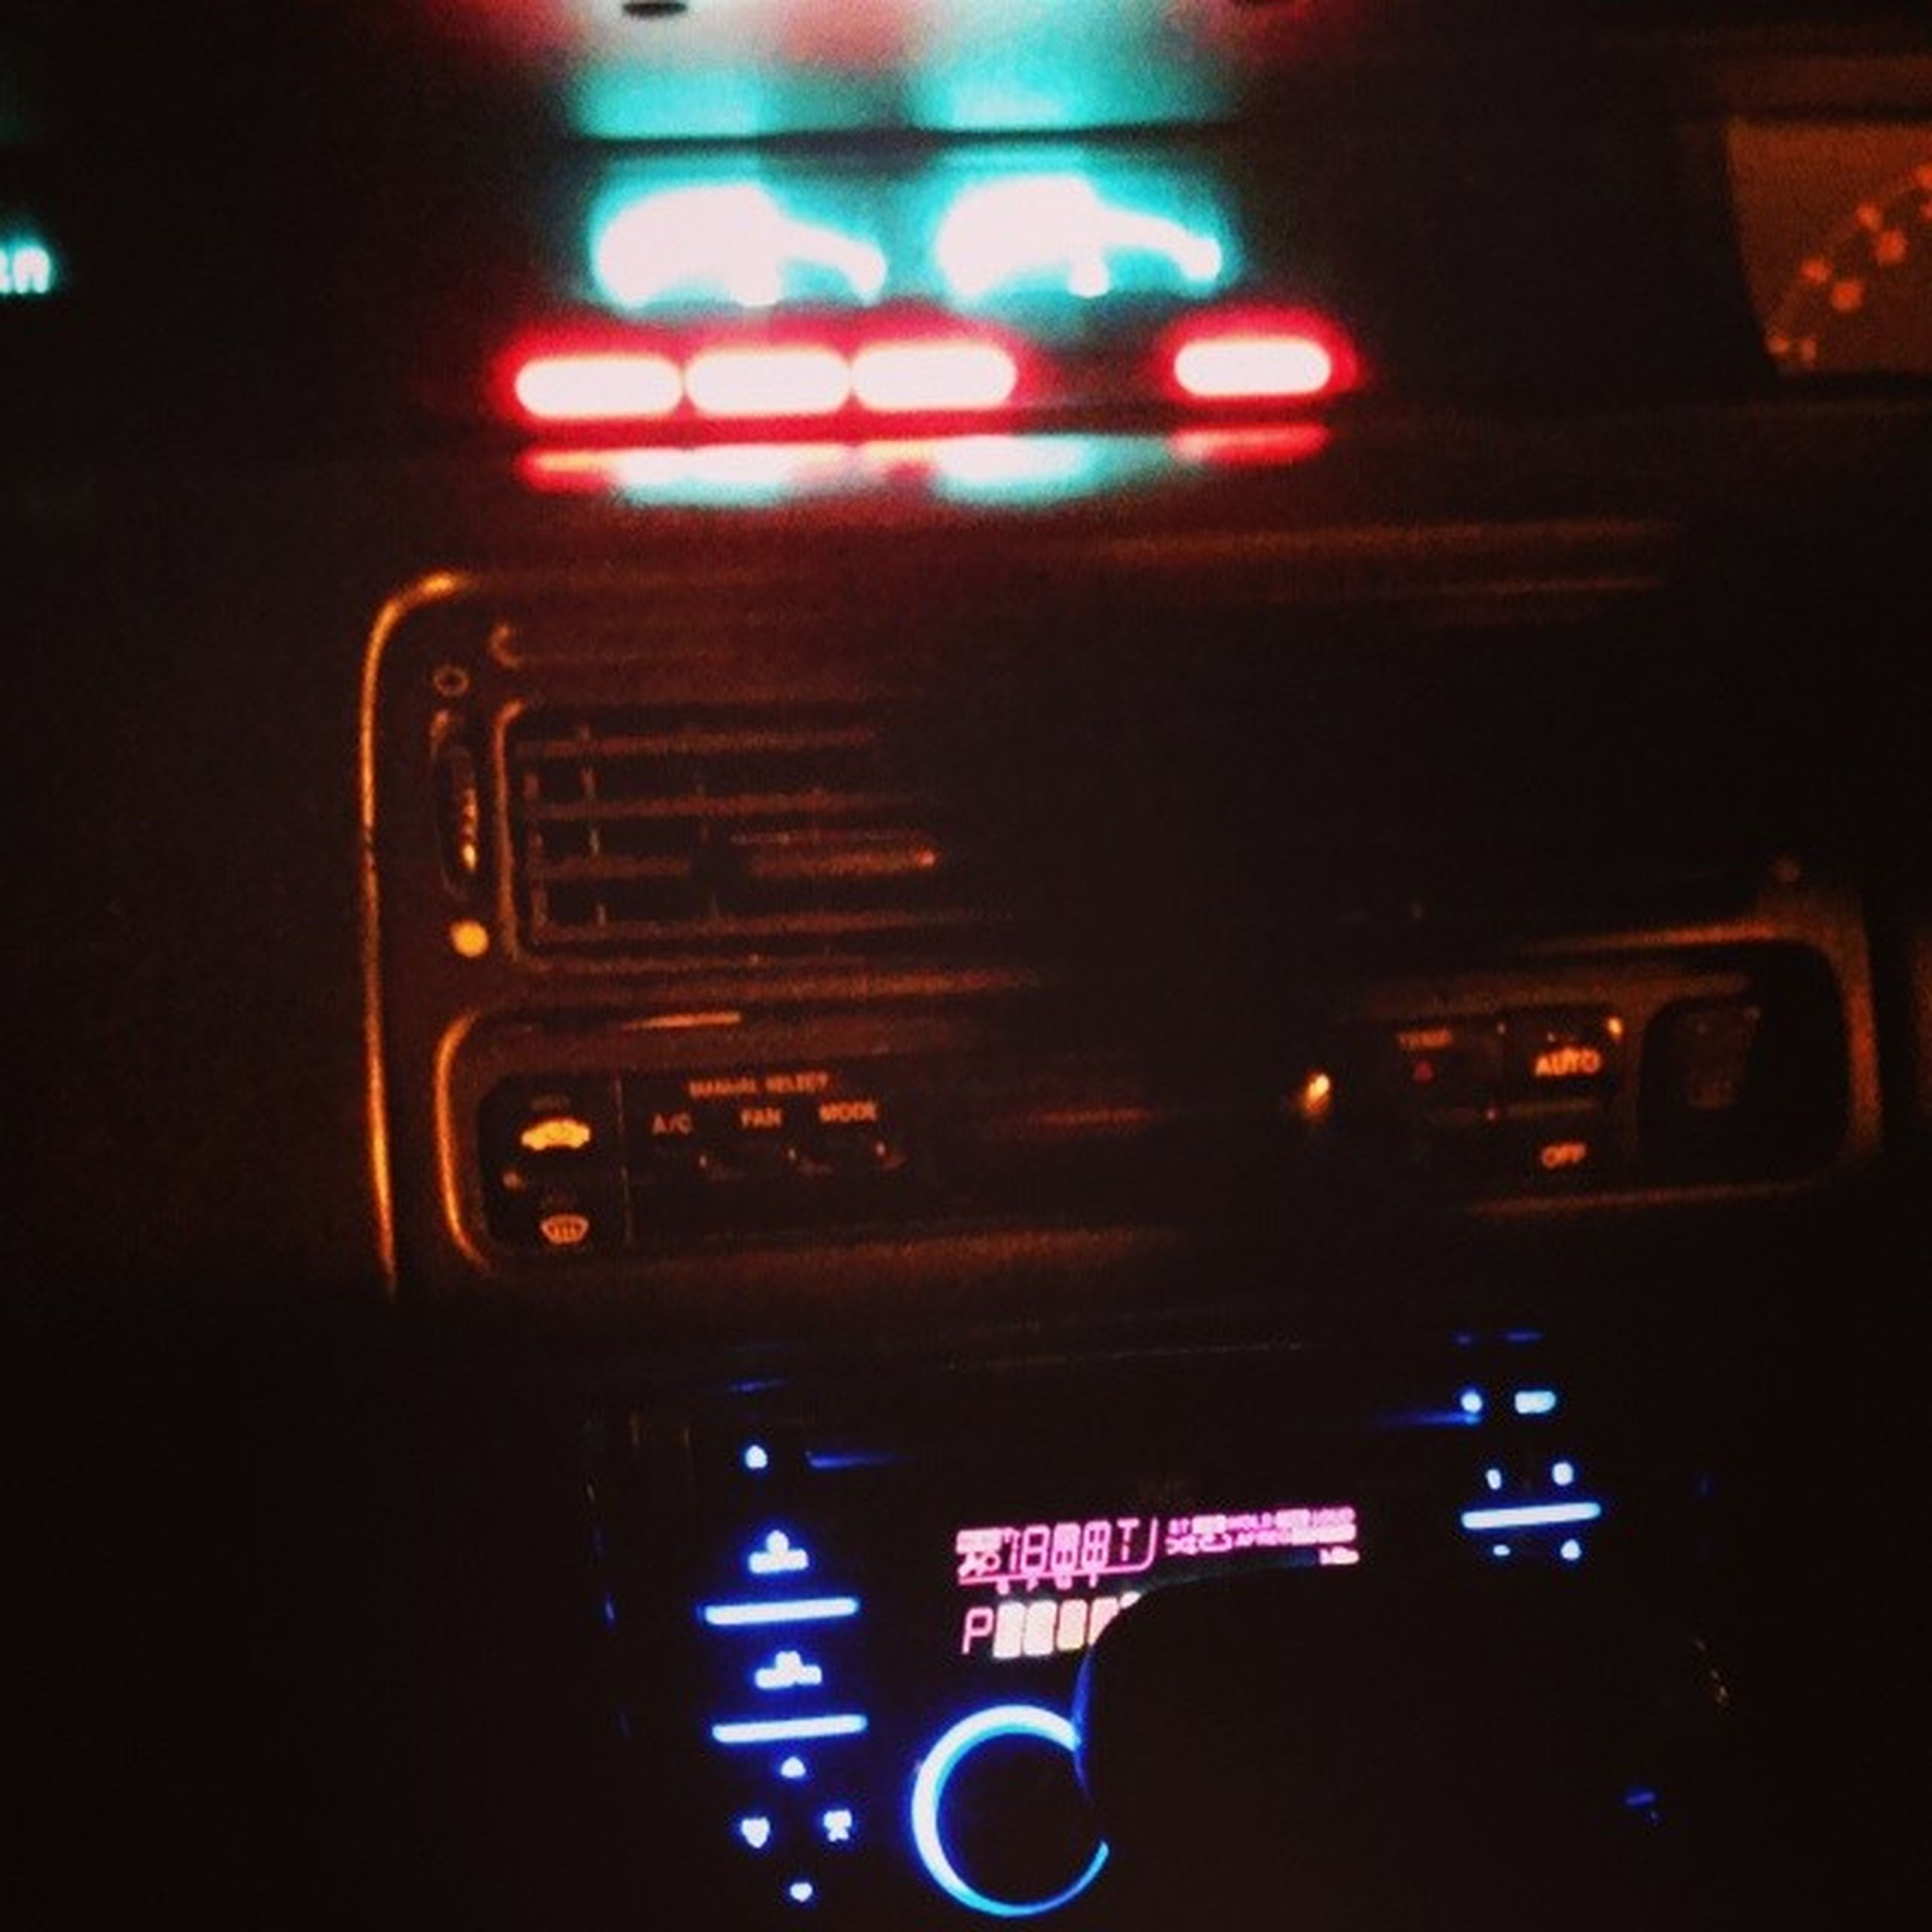 transportation, mode of transport, land vehicle, car, illuminated, communication, vehicle interior, travel, night, technology, indoors, text, car interior, on the move, dashboard, public transportation, traffic, speedometer, western script, journey